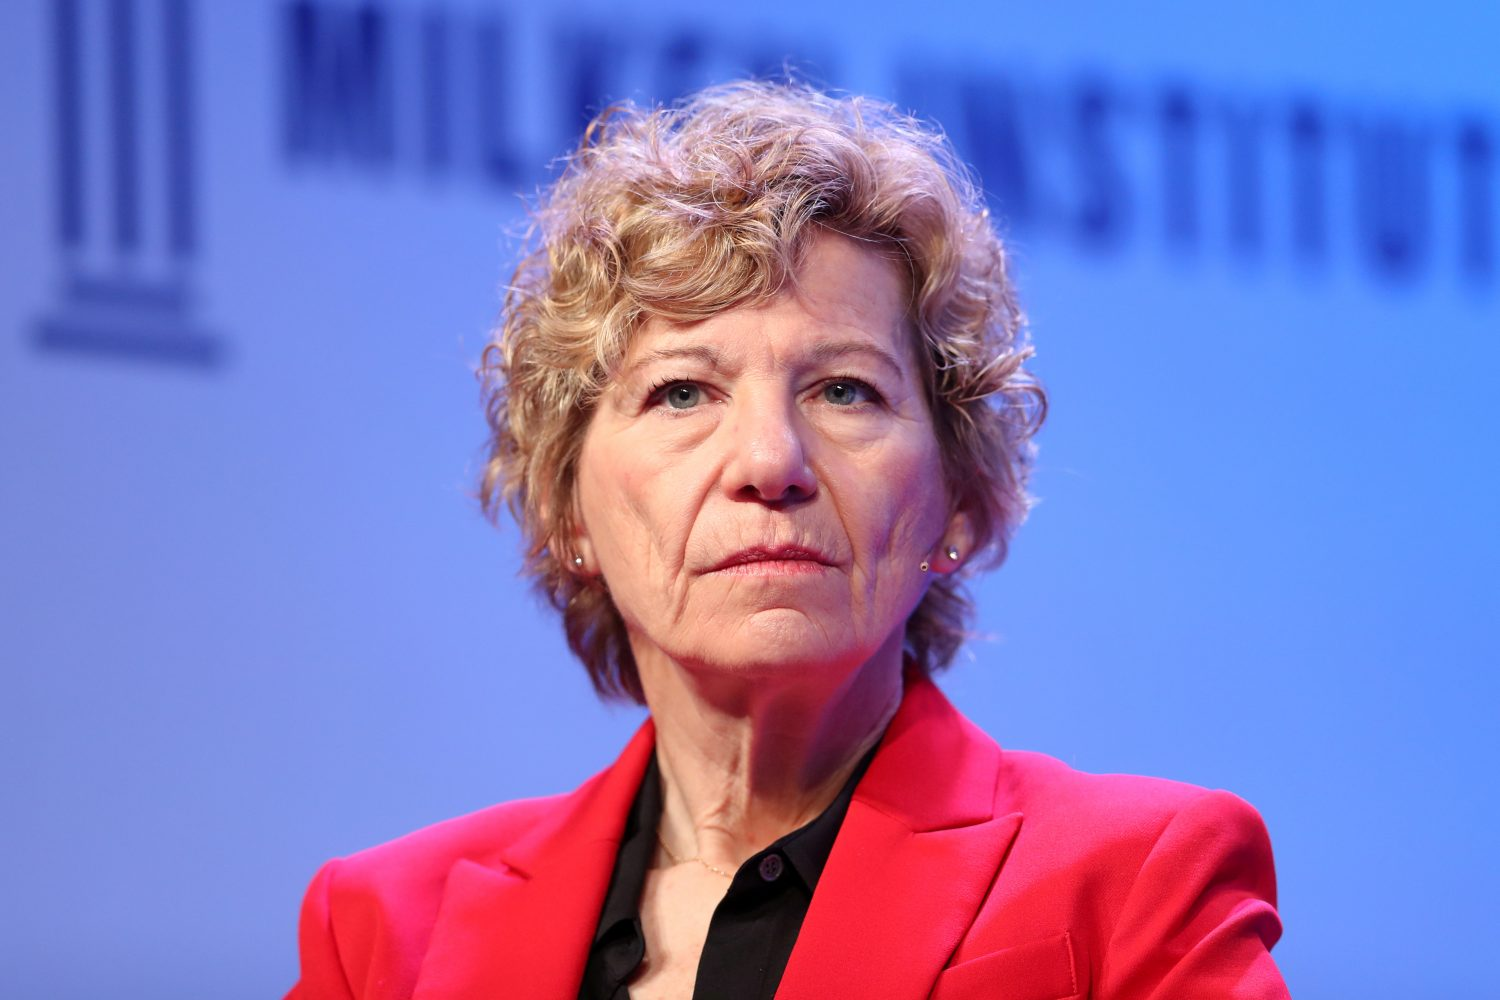 FILE PHOTO: Susan Desmond-Hellmann, CEO of Bill & Melinda Gates Foundation, speaks at the 2019 Milken Institute Global Conference in Beverly Hills, California, U.S., April 29, 2019. REUTERS/Lucy Nicholson/File Photo